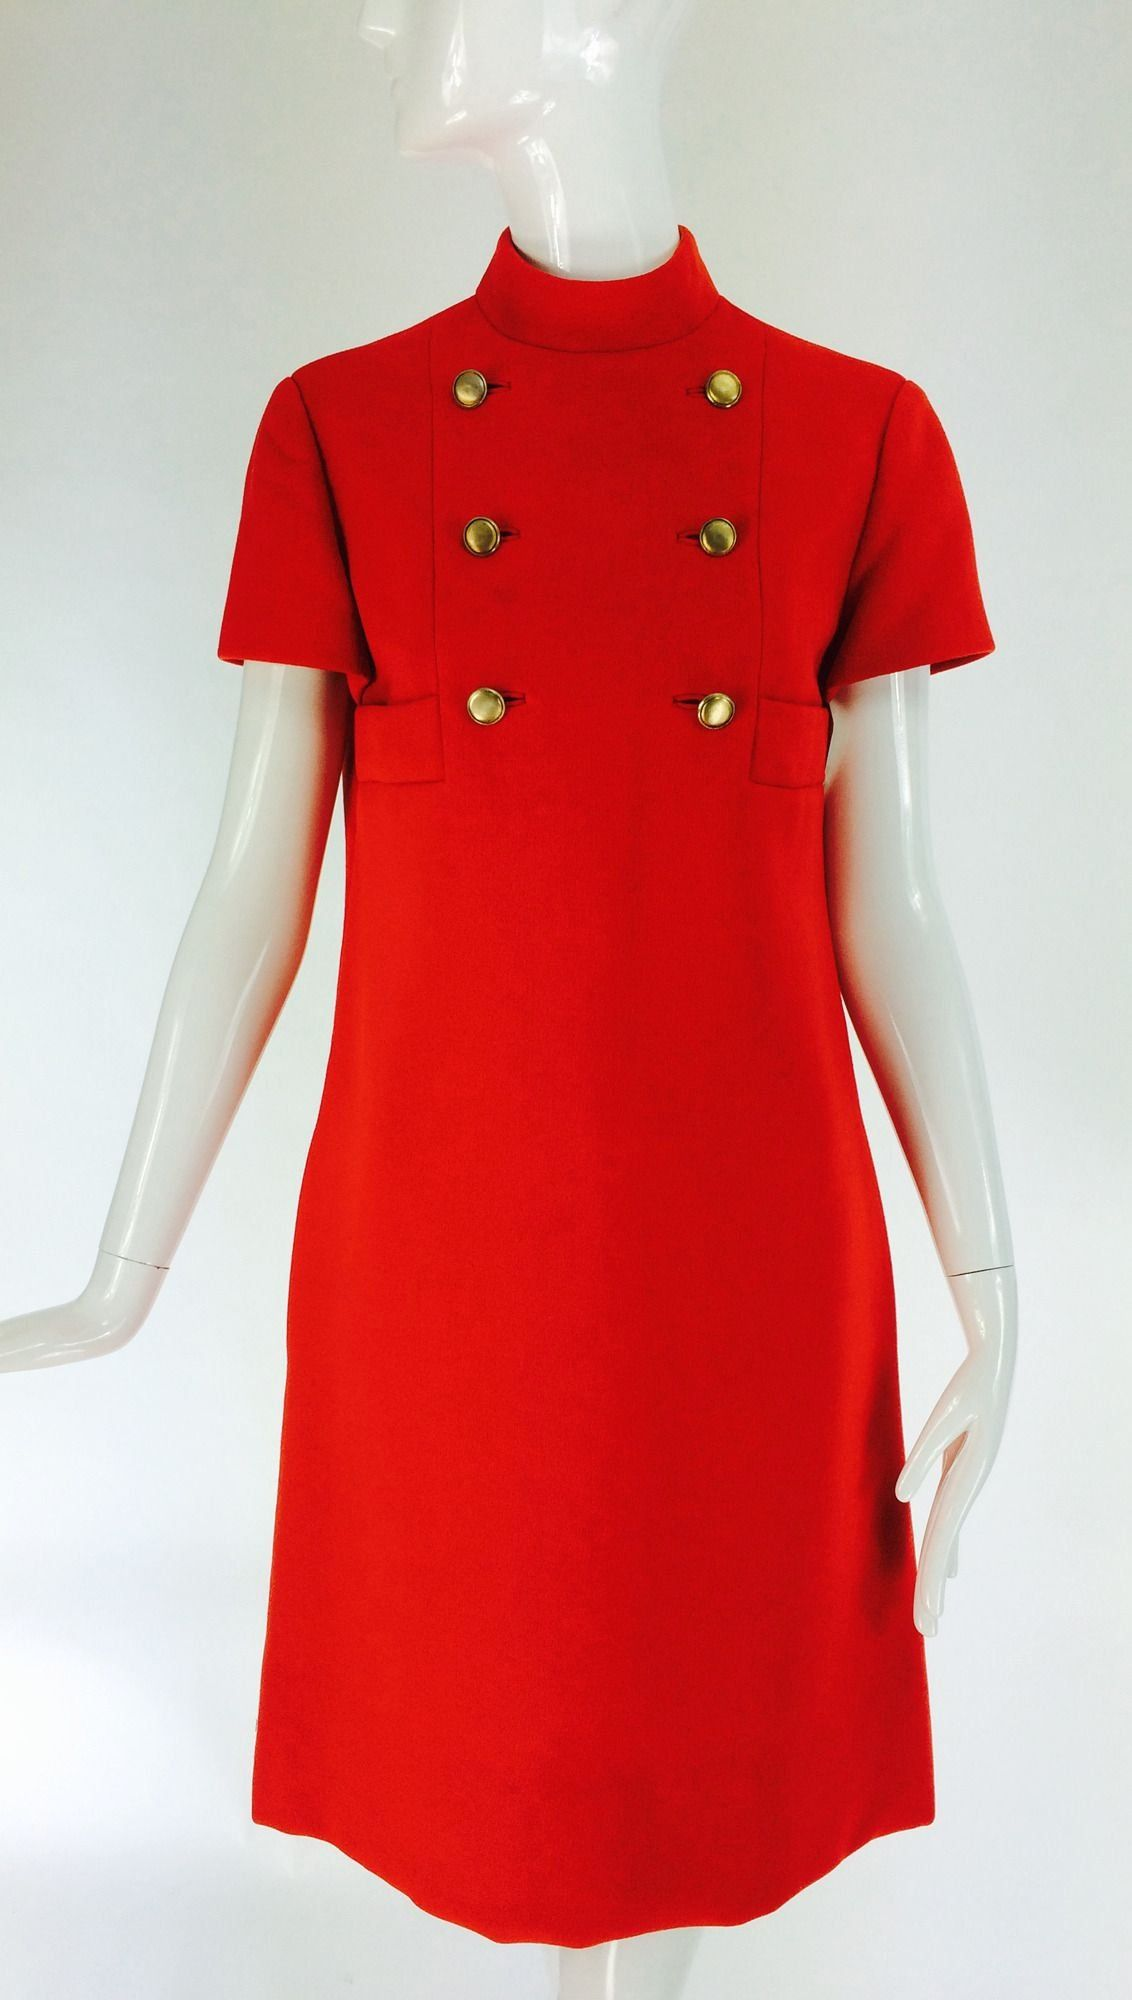 1960s Geoffrey Beene Coral Red Wool Crepe Mod Shift Dress 1000 Fashion Mod Fashion 1960s Outfits [ 2000 x 1132 Pixel ]